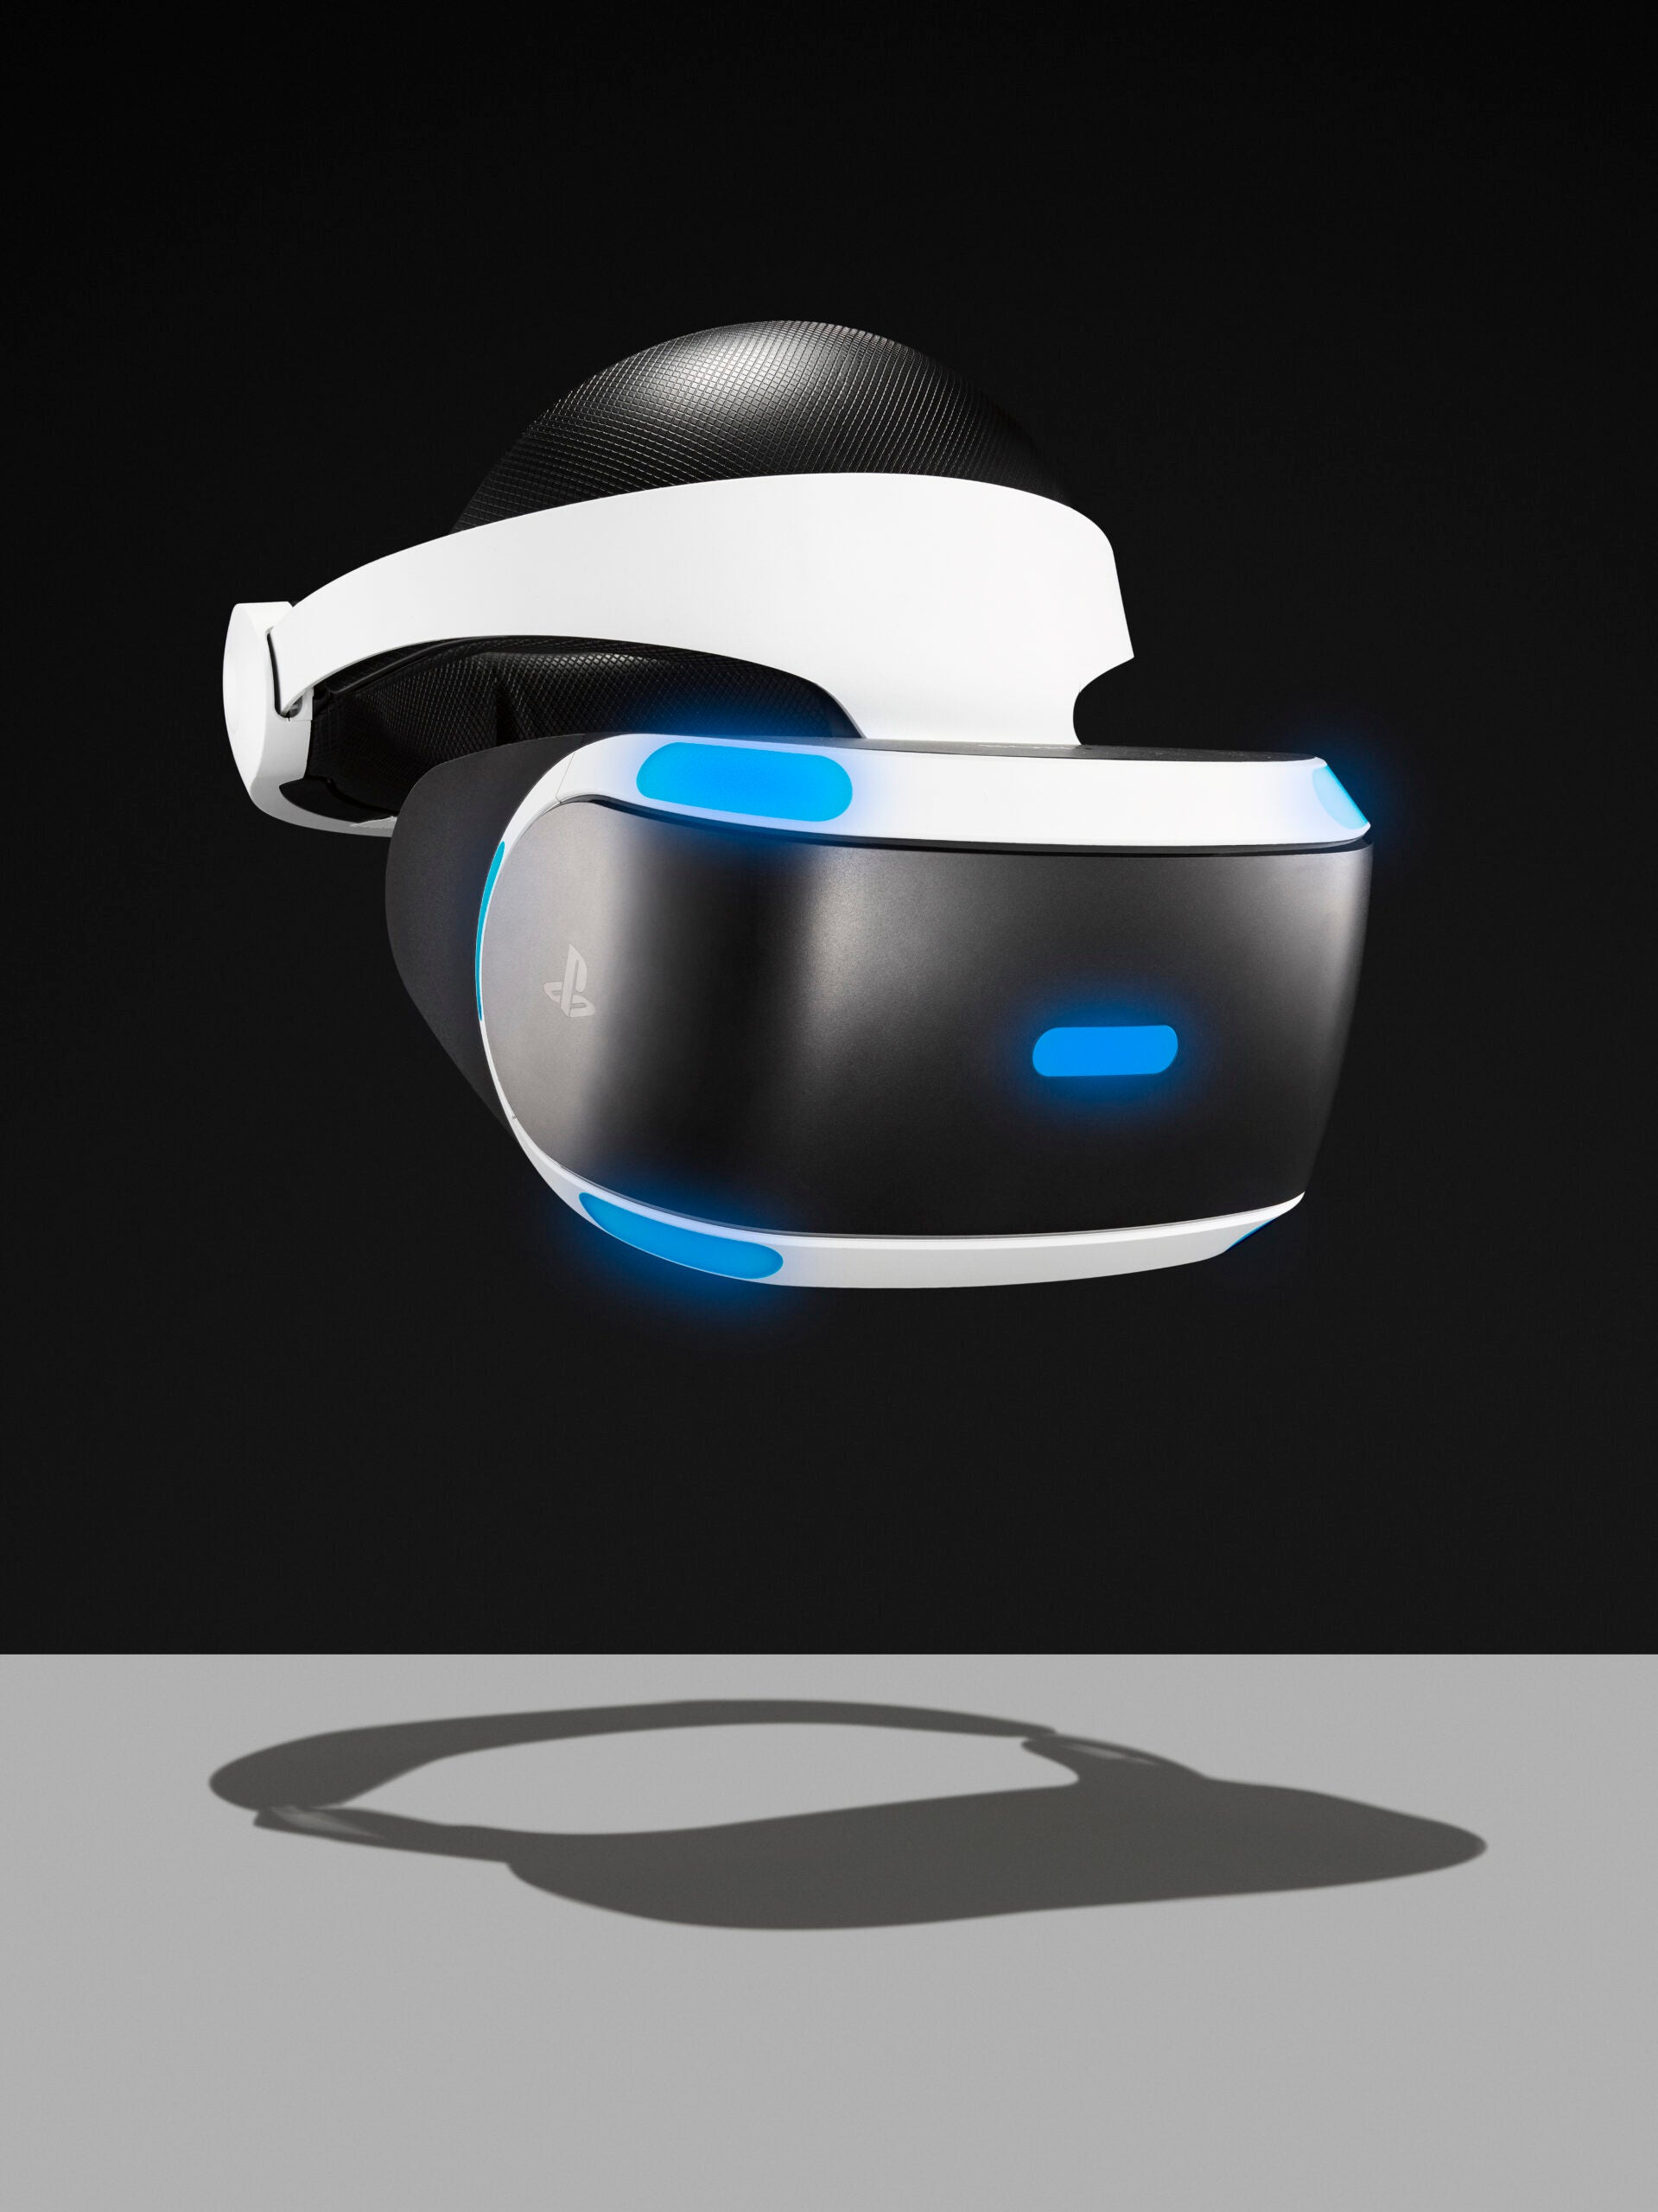 Playstation Headset Could Make Virtual Reality Mainstream